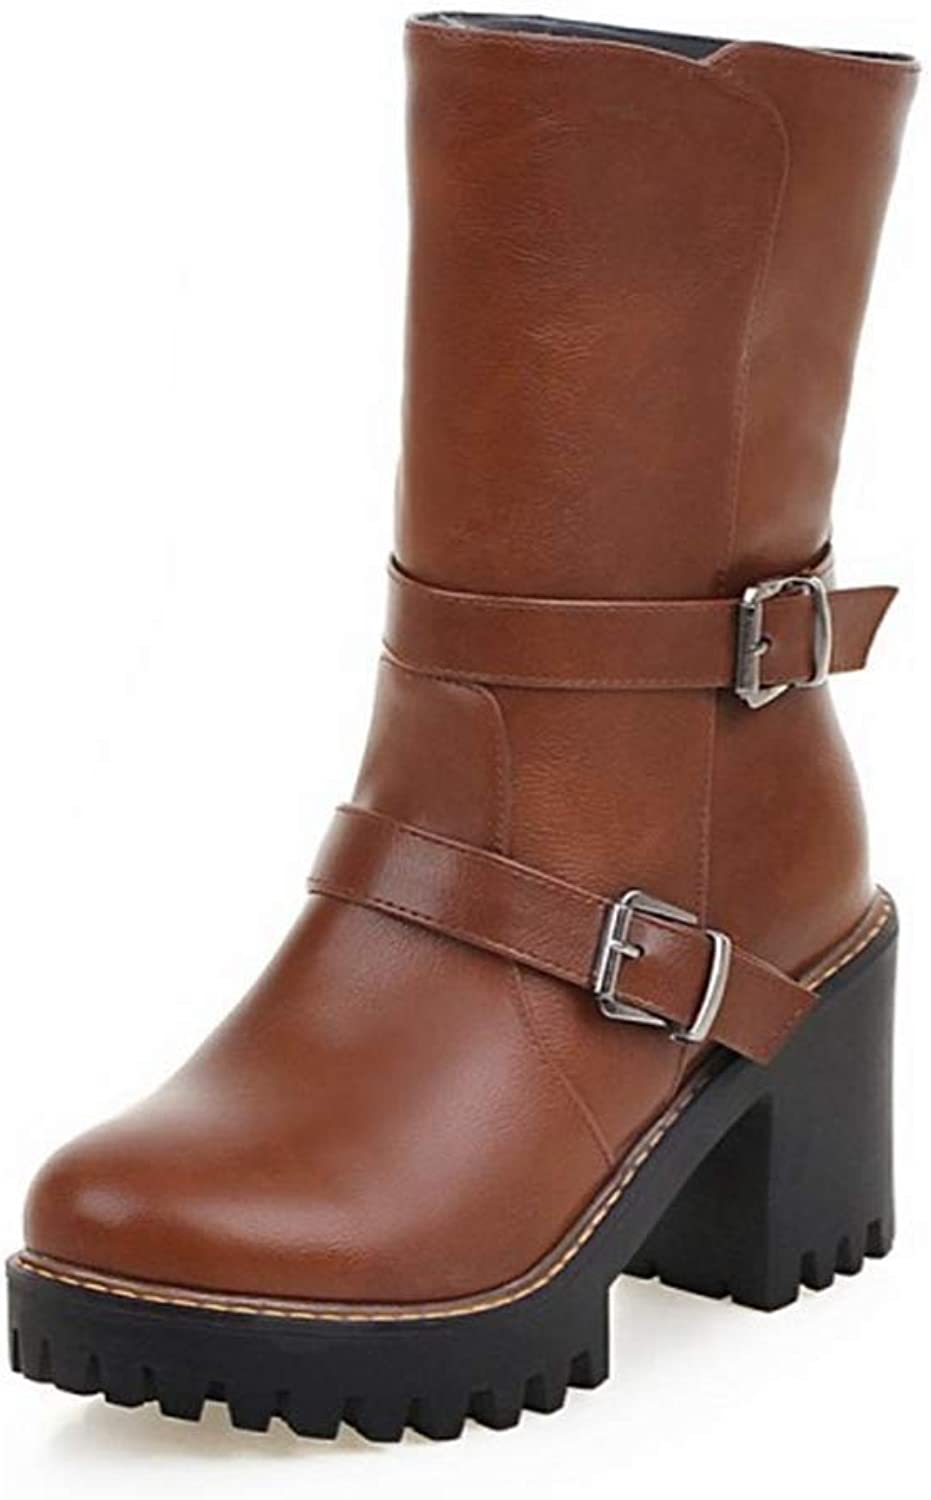 CYBLING Women's Stylish Round Toe Buckle Strap Mid-Calf Riding Boots Platform Chunky Heel Winter shoes